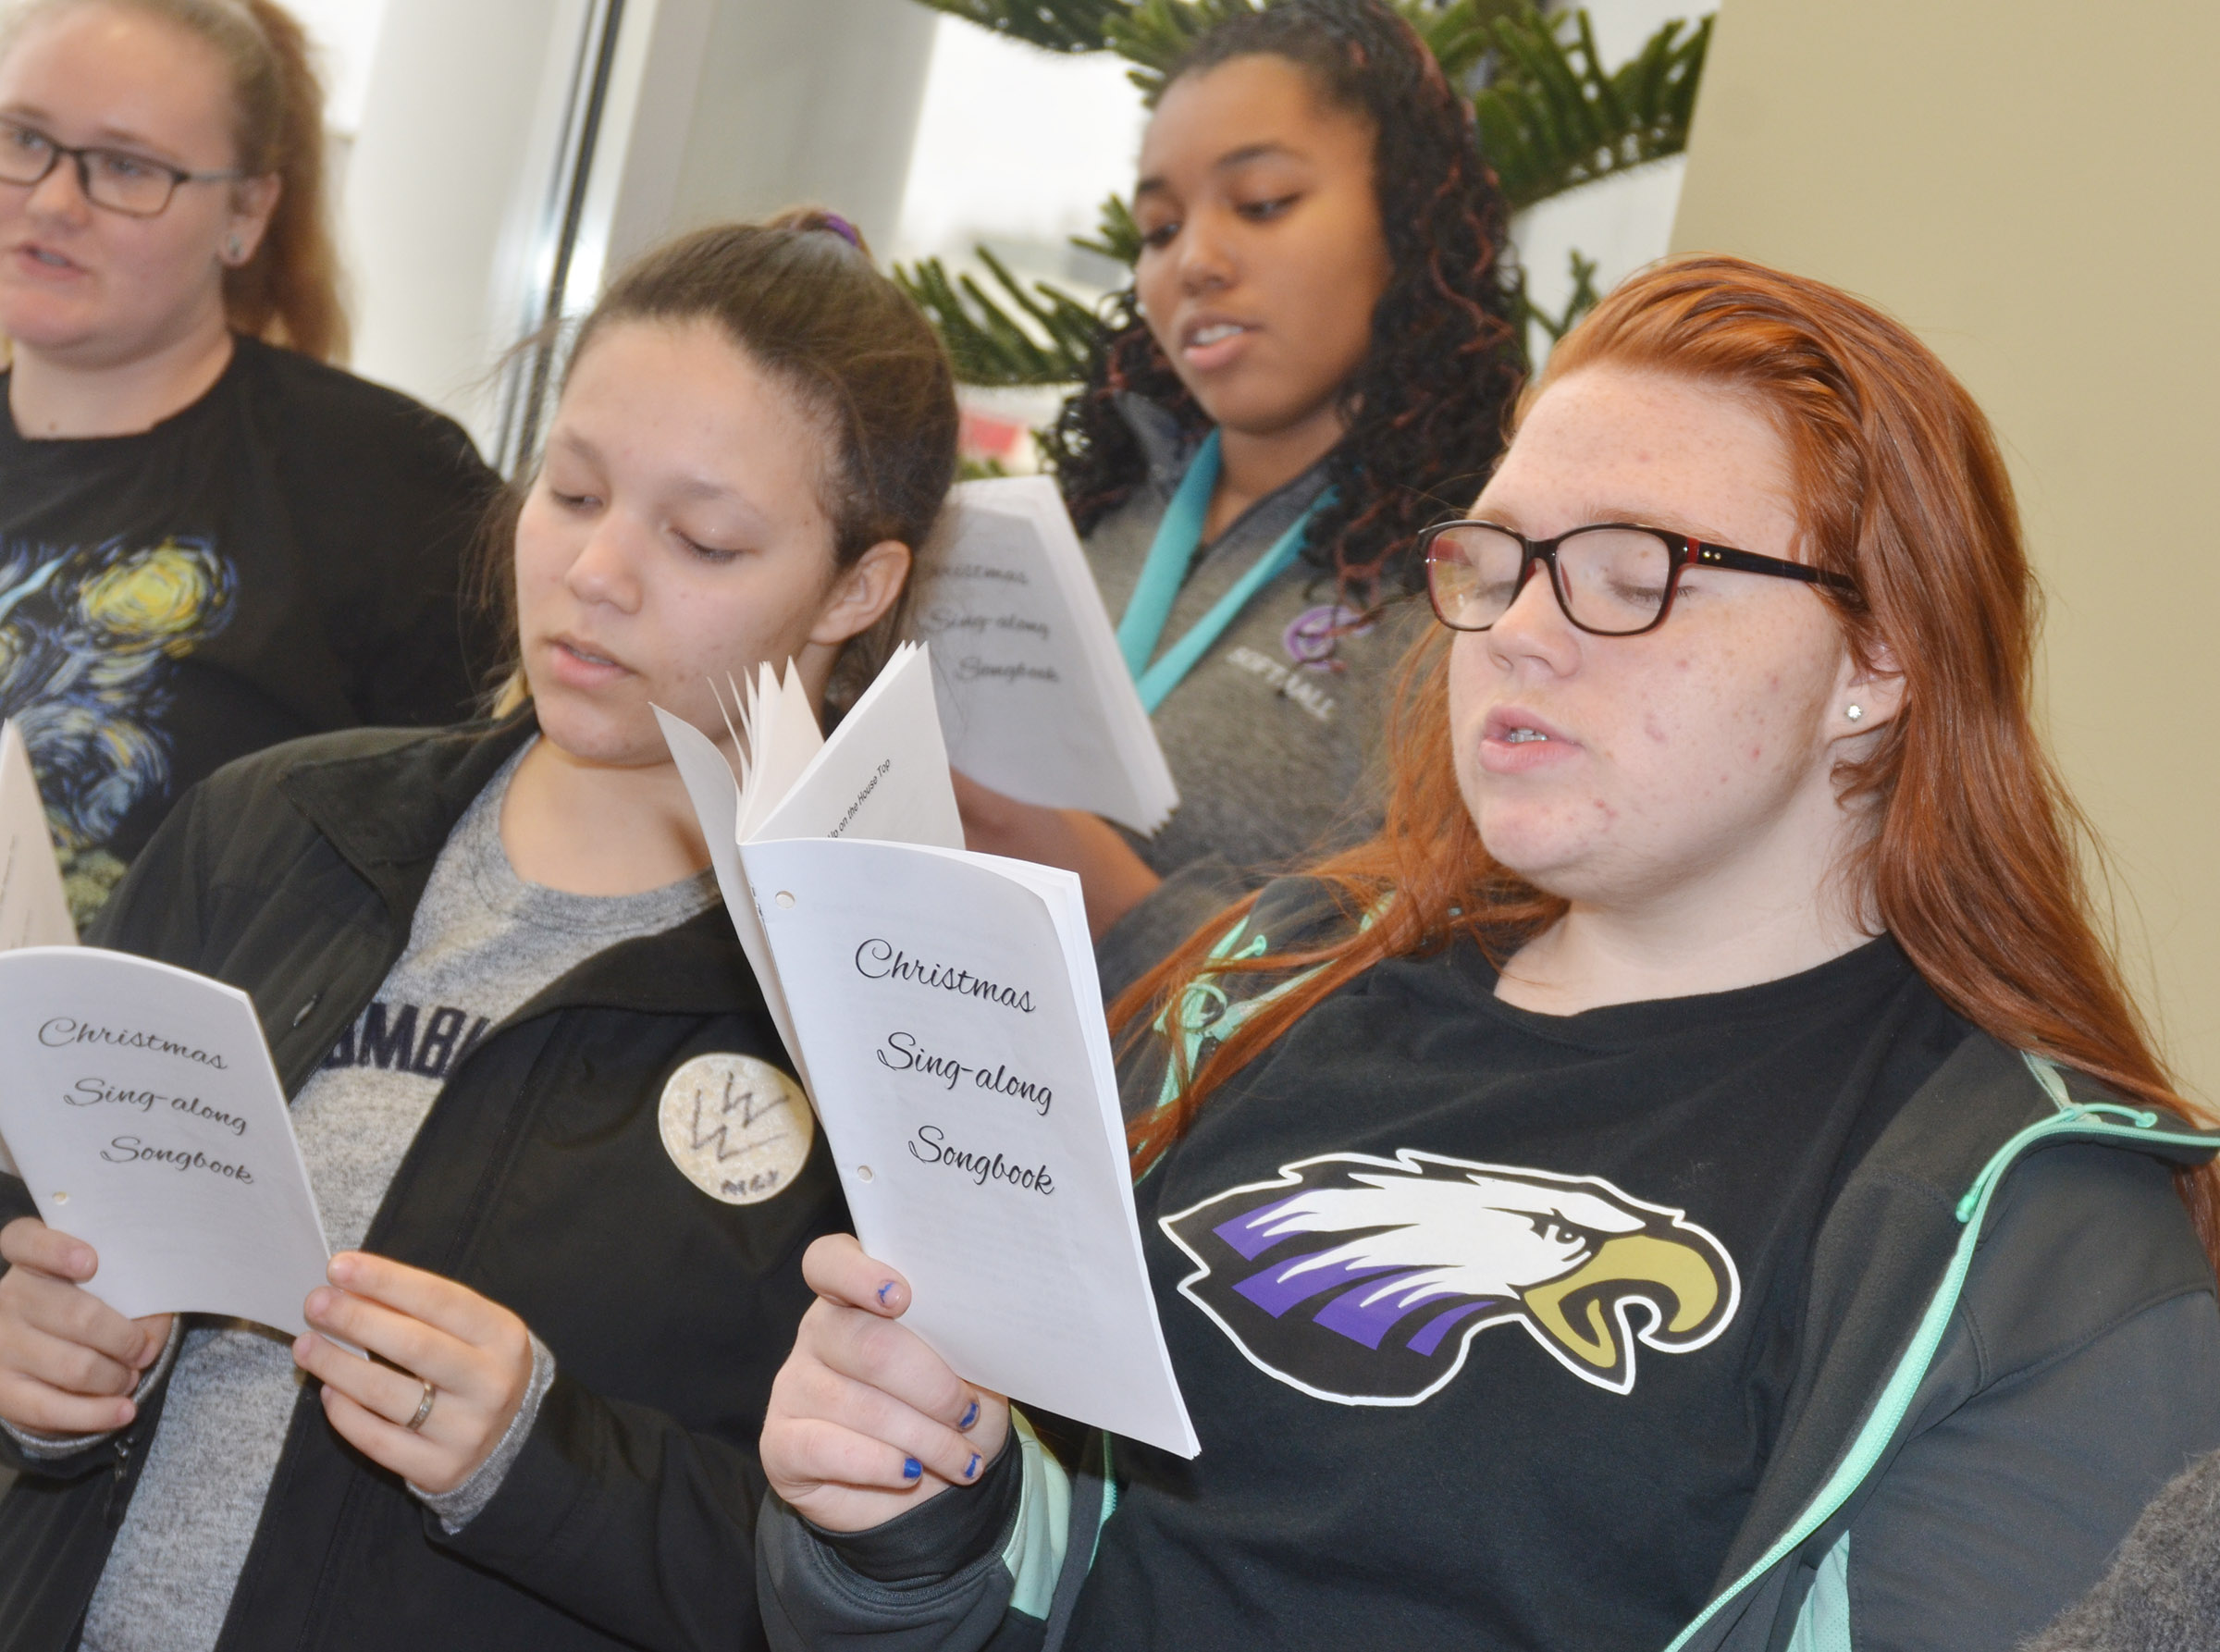 CHS choir members sing Christmas carols at Taylor County Bank. From left, front, are freshmen Tierra Bridgewater and Jadelyn Caffee. Back, senior Jay Cox and junior Malaya Hoskins.